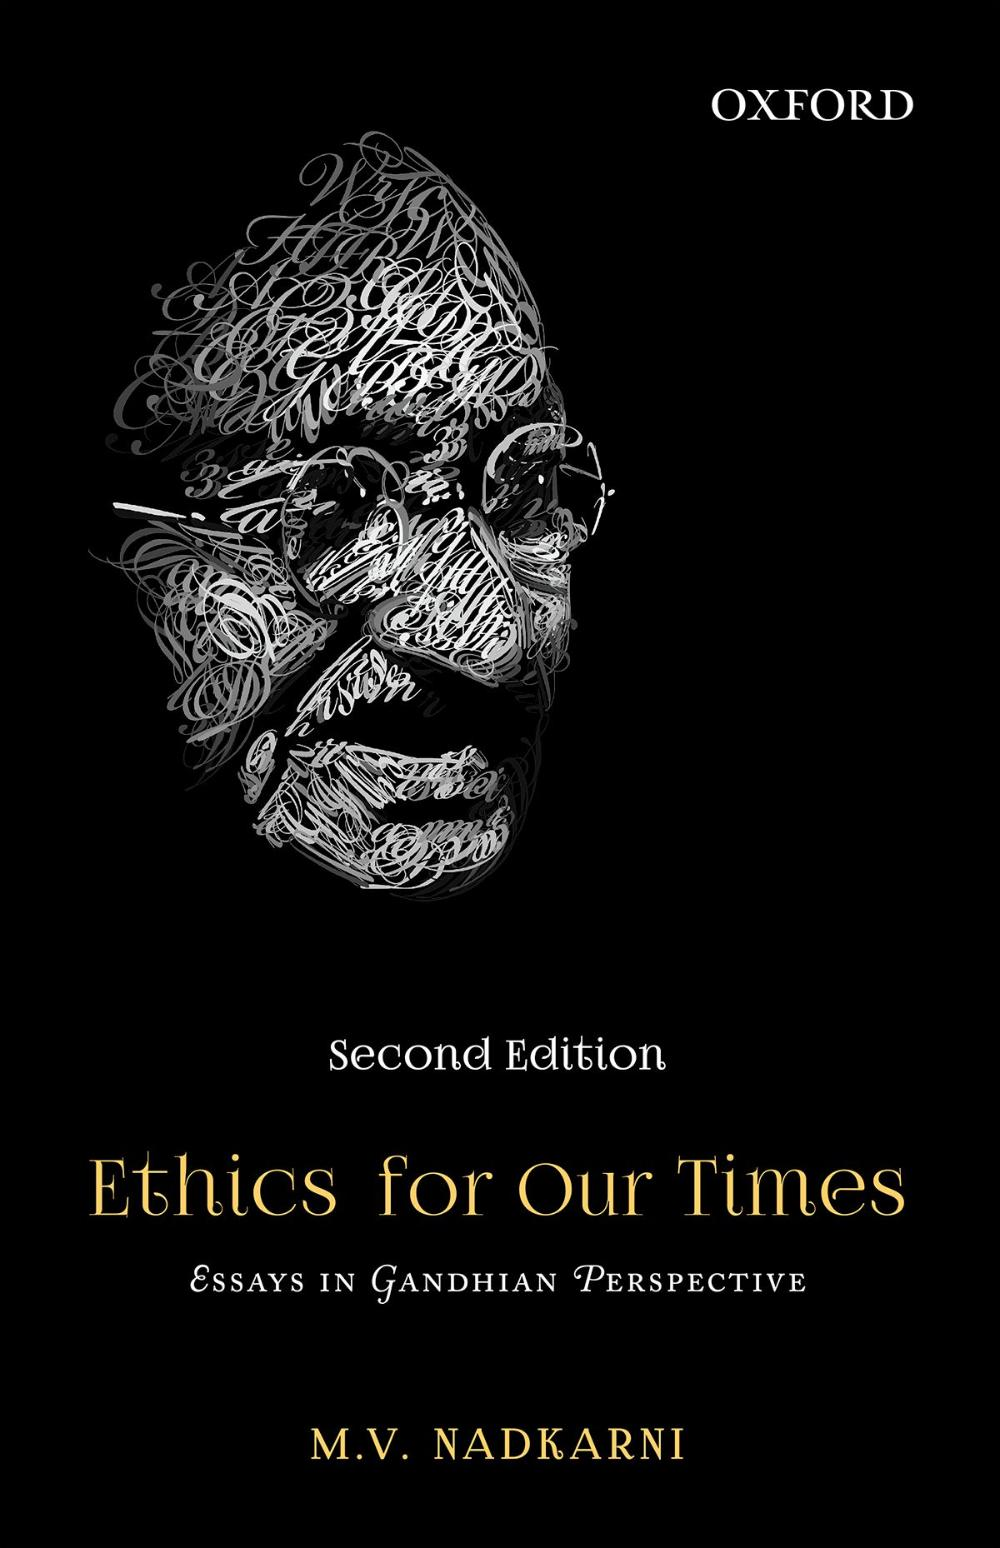 com ethics for our times essays in gandhian perspective ethics for our times essays in gandhian perspective